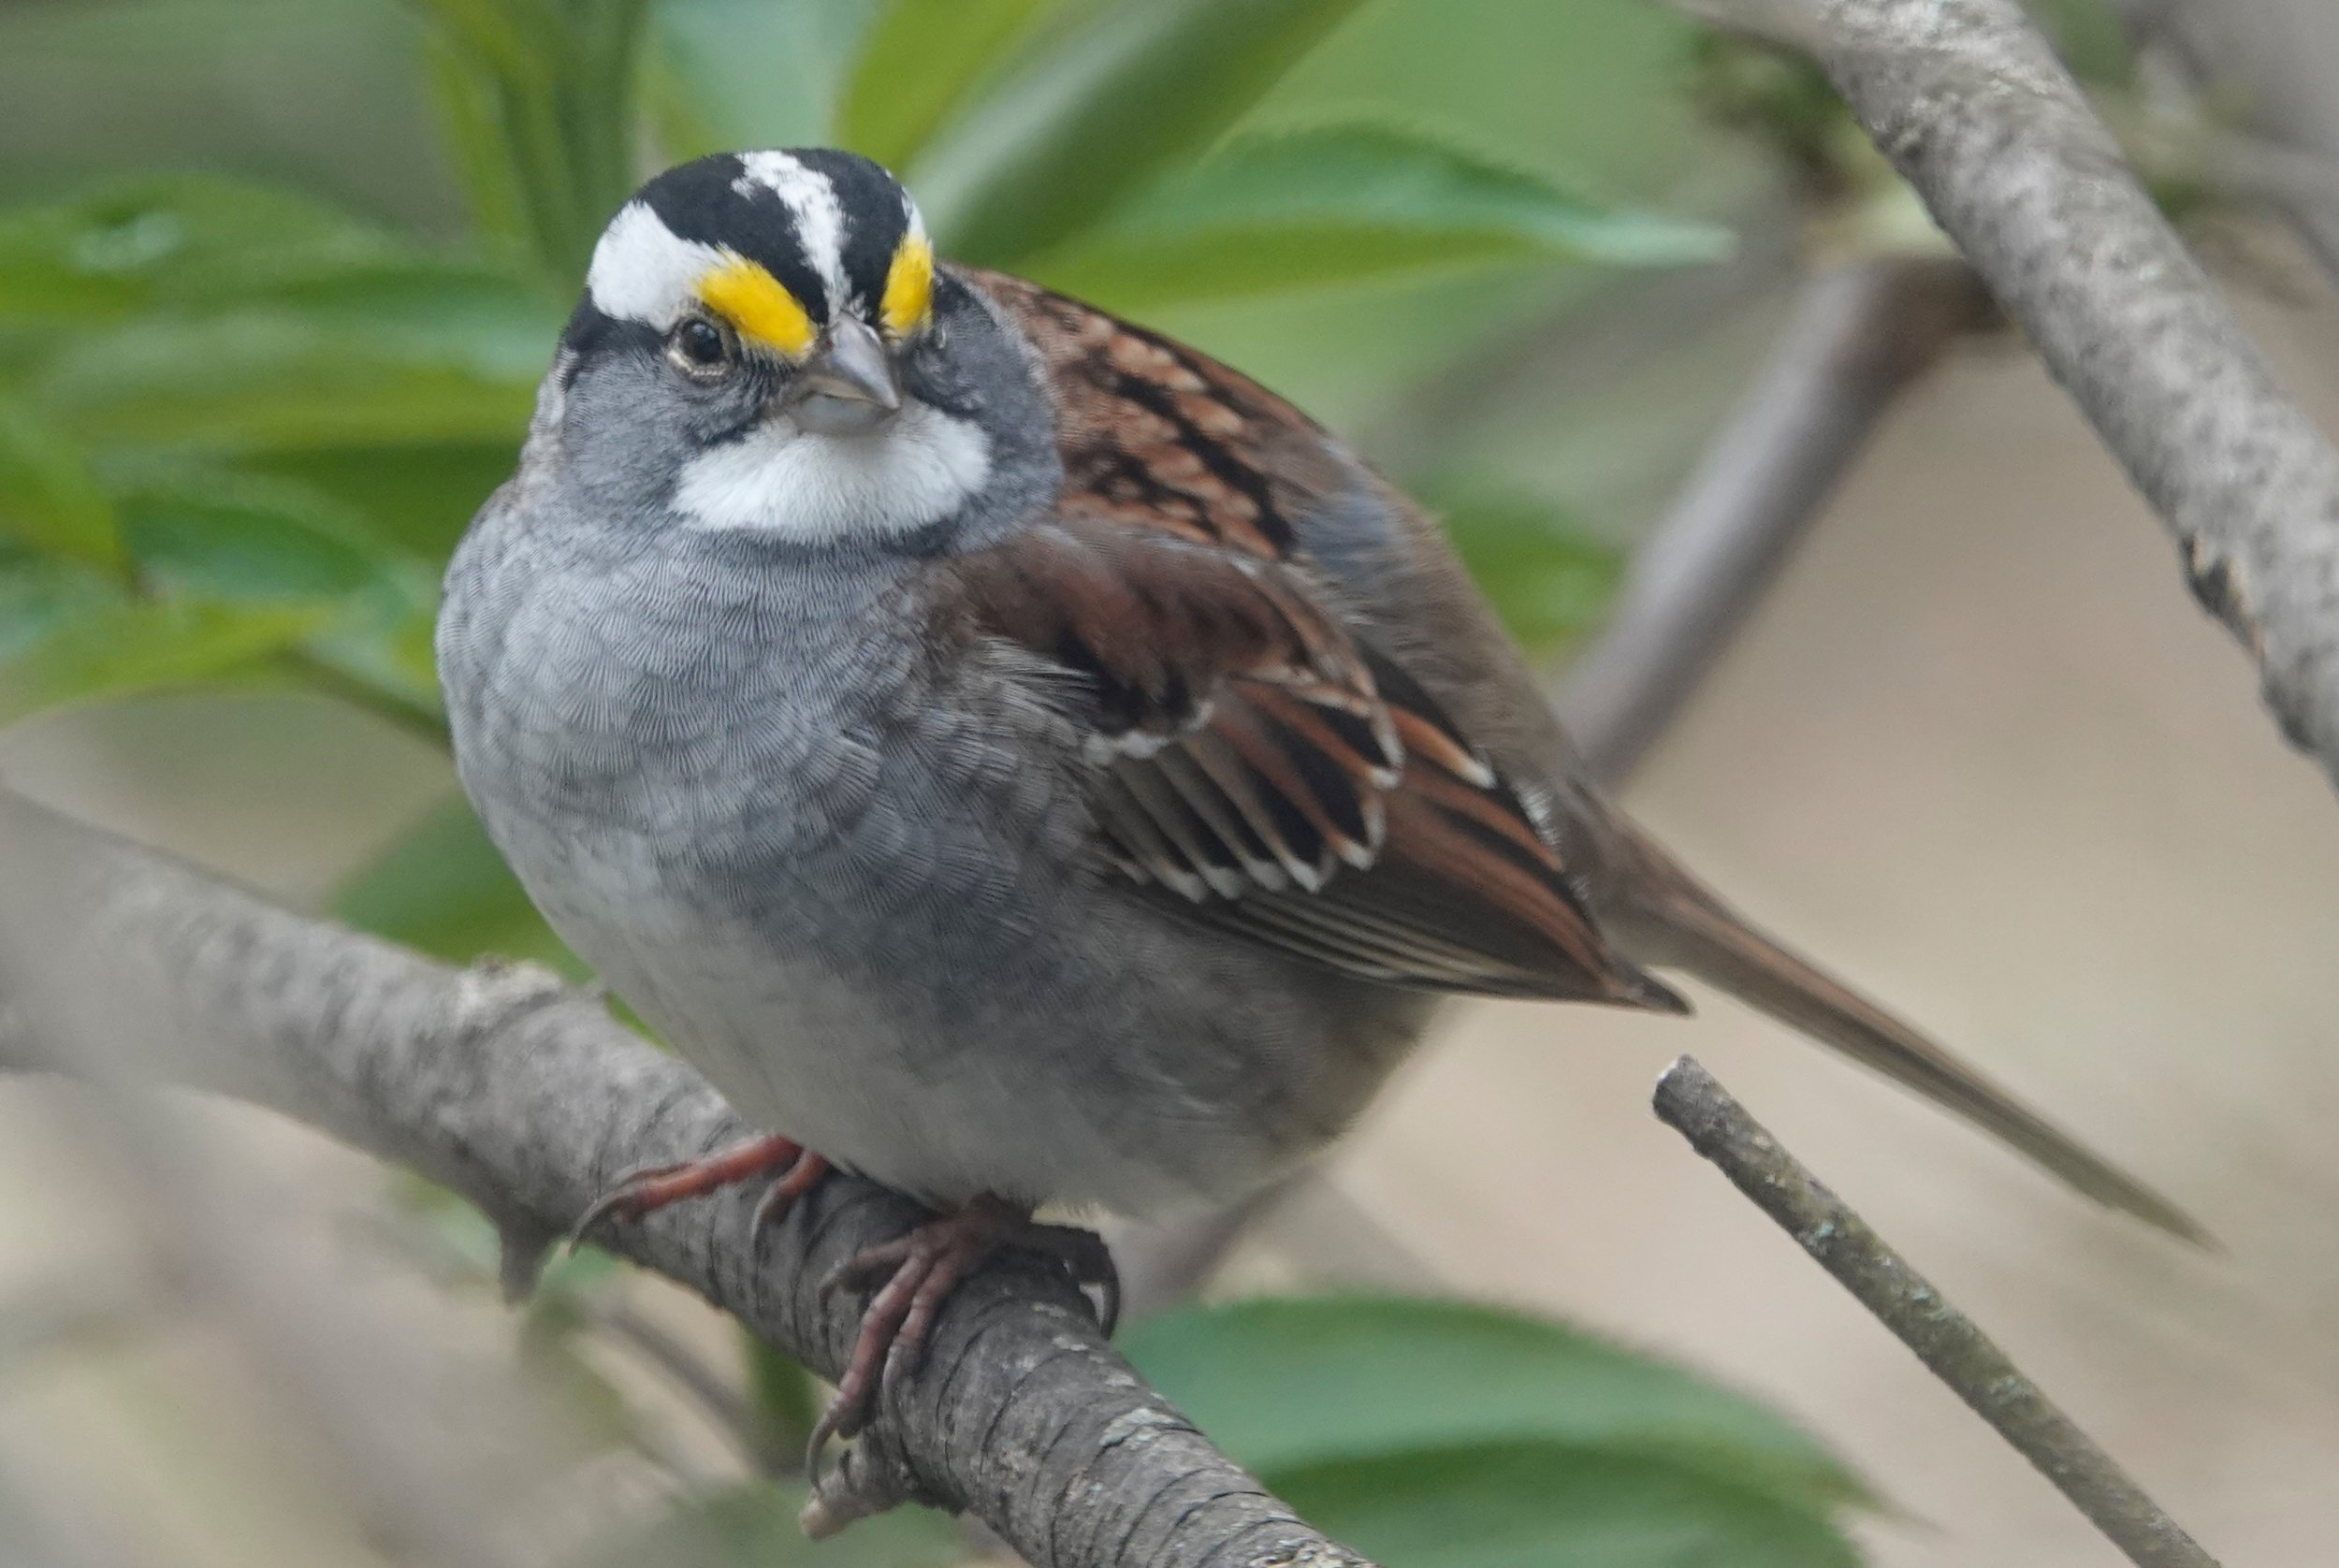 I love hearing the plaintive whistle of the white-throated sparrow.